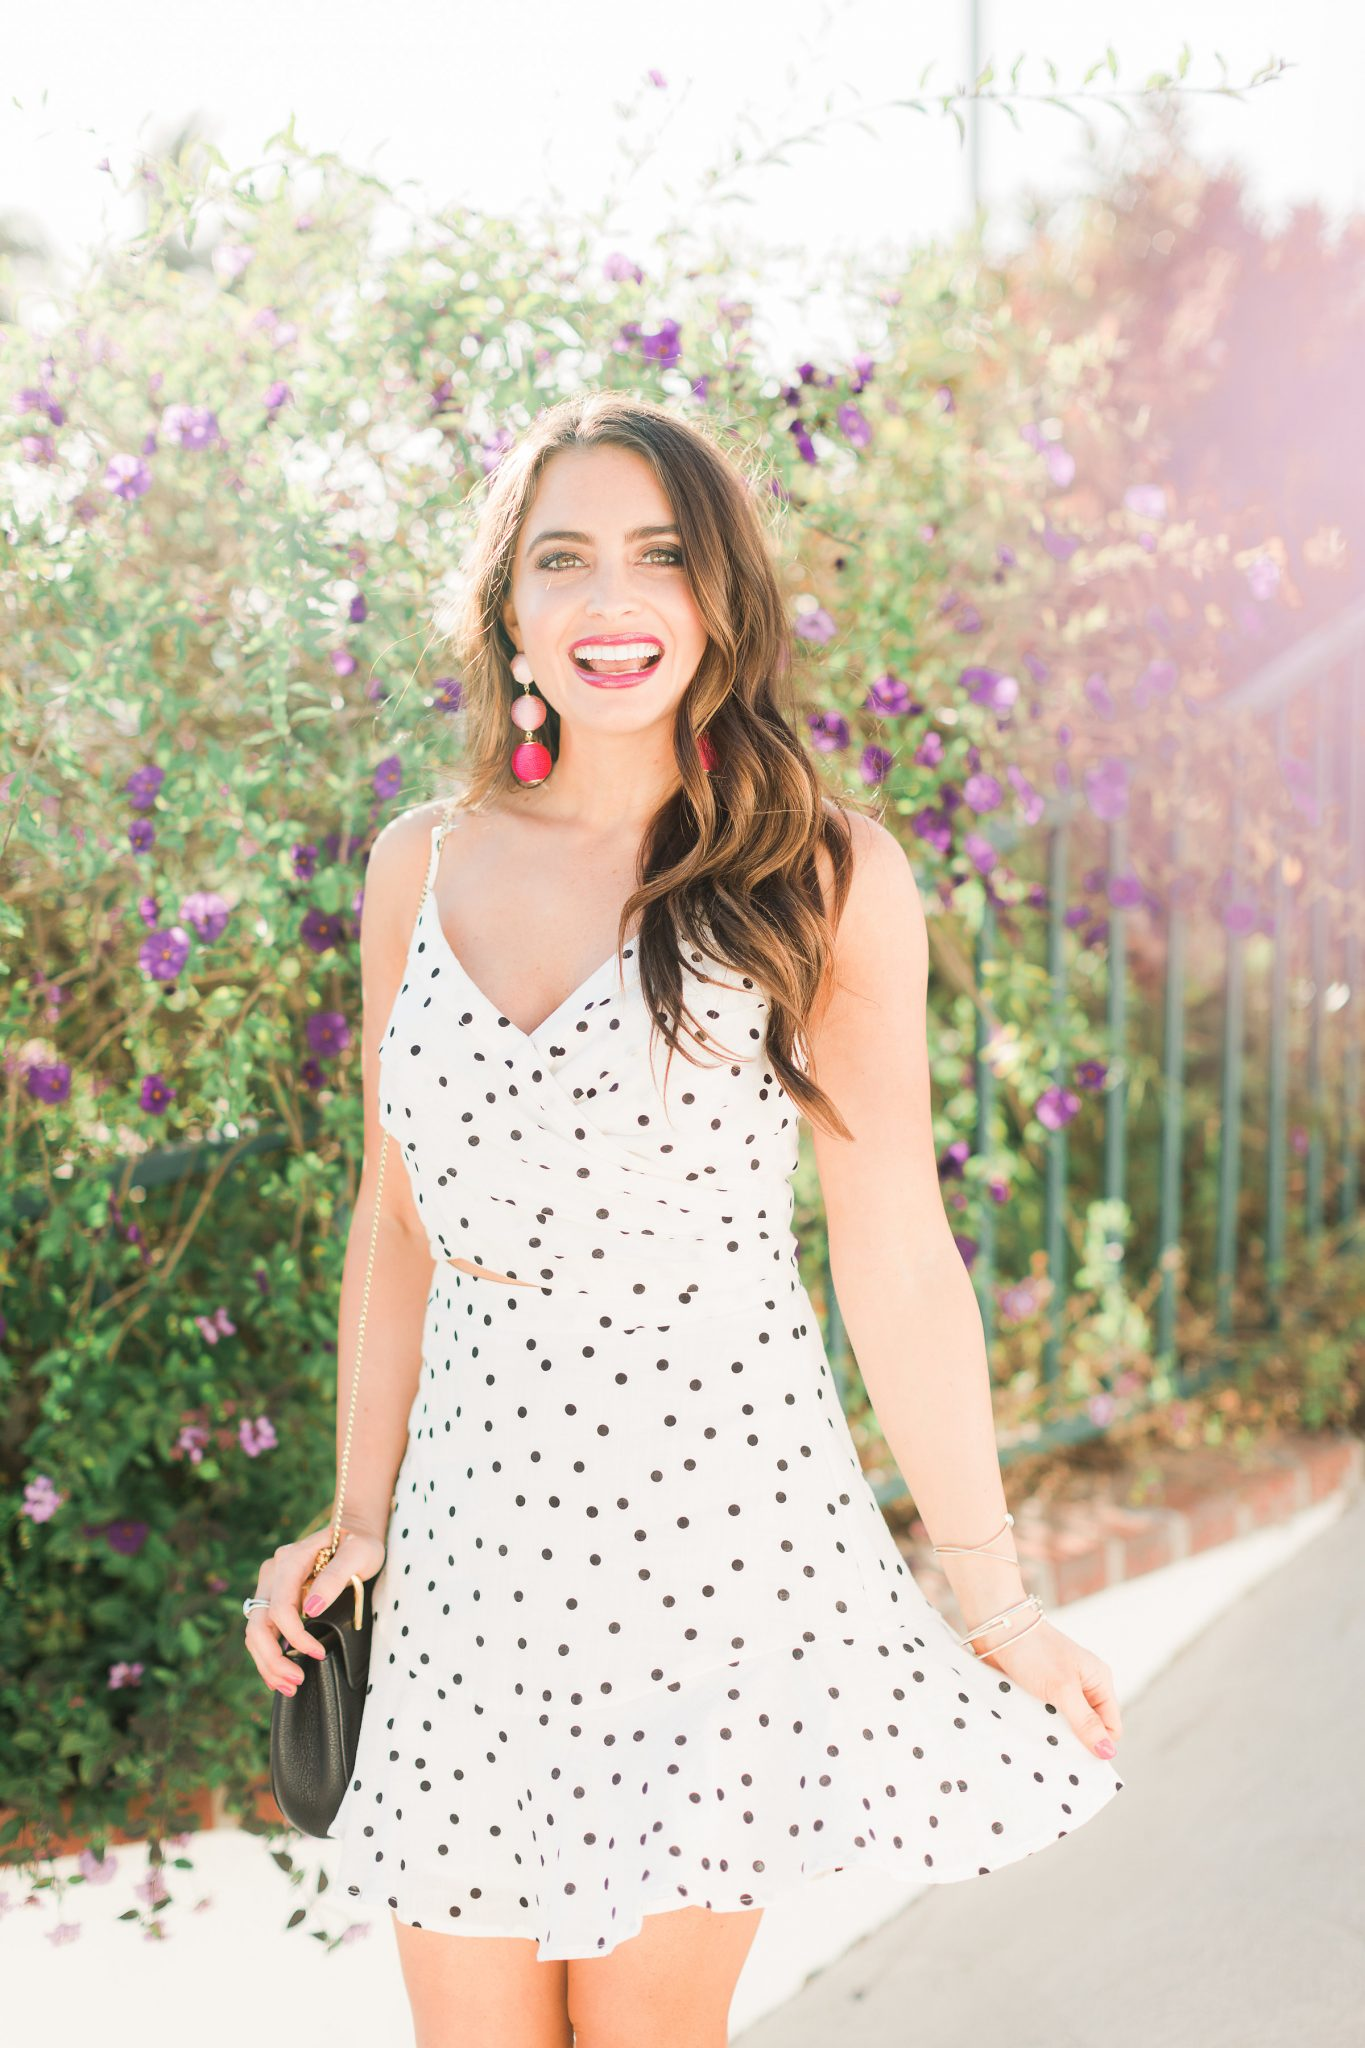 Polka dot top and skirt - Polka Dot Clothing styled by popular Orange County fashion blogger, Maxie Elle